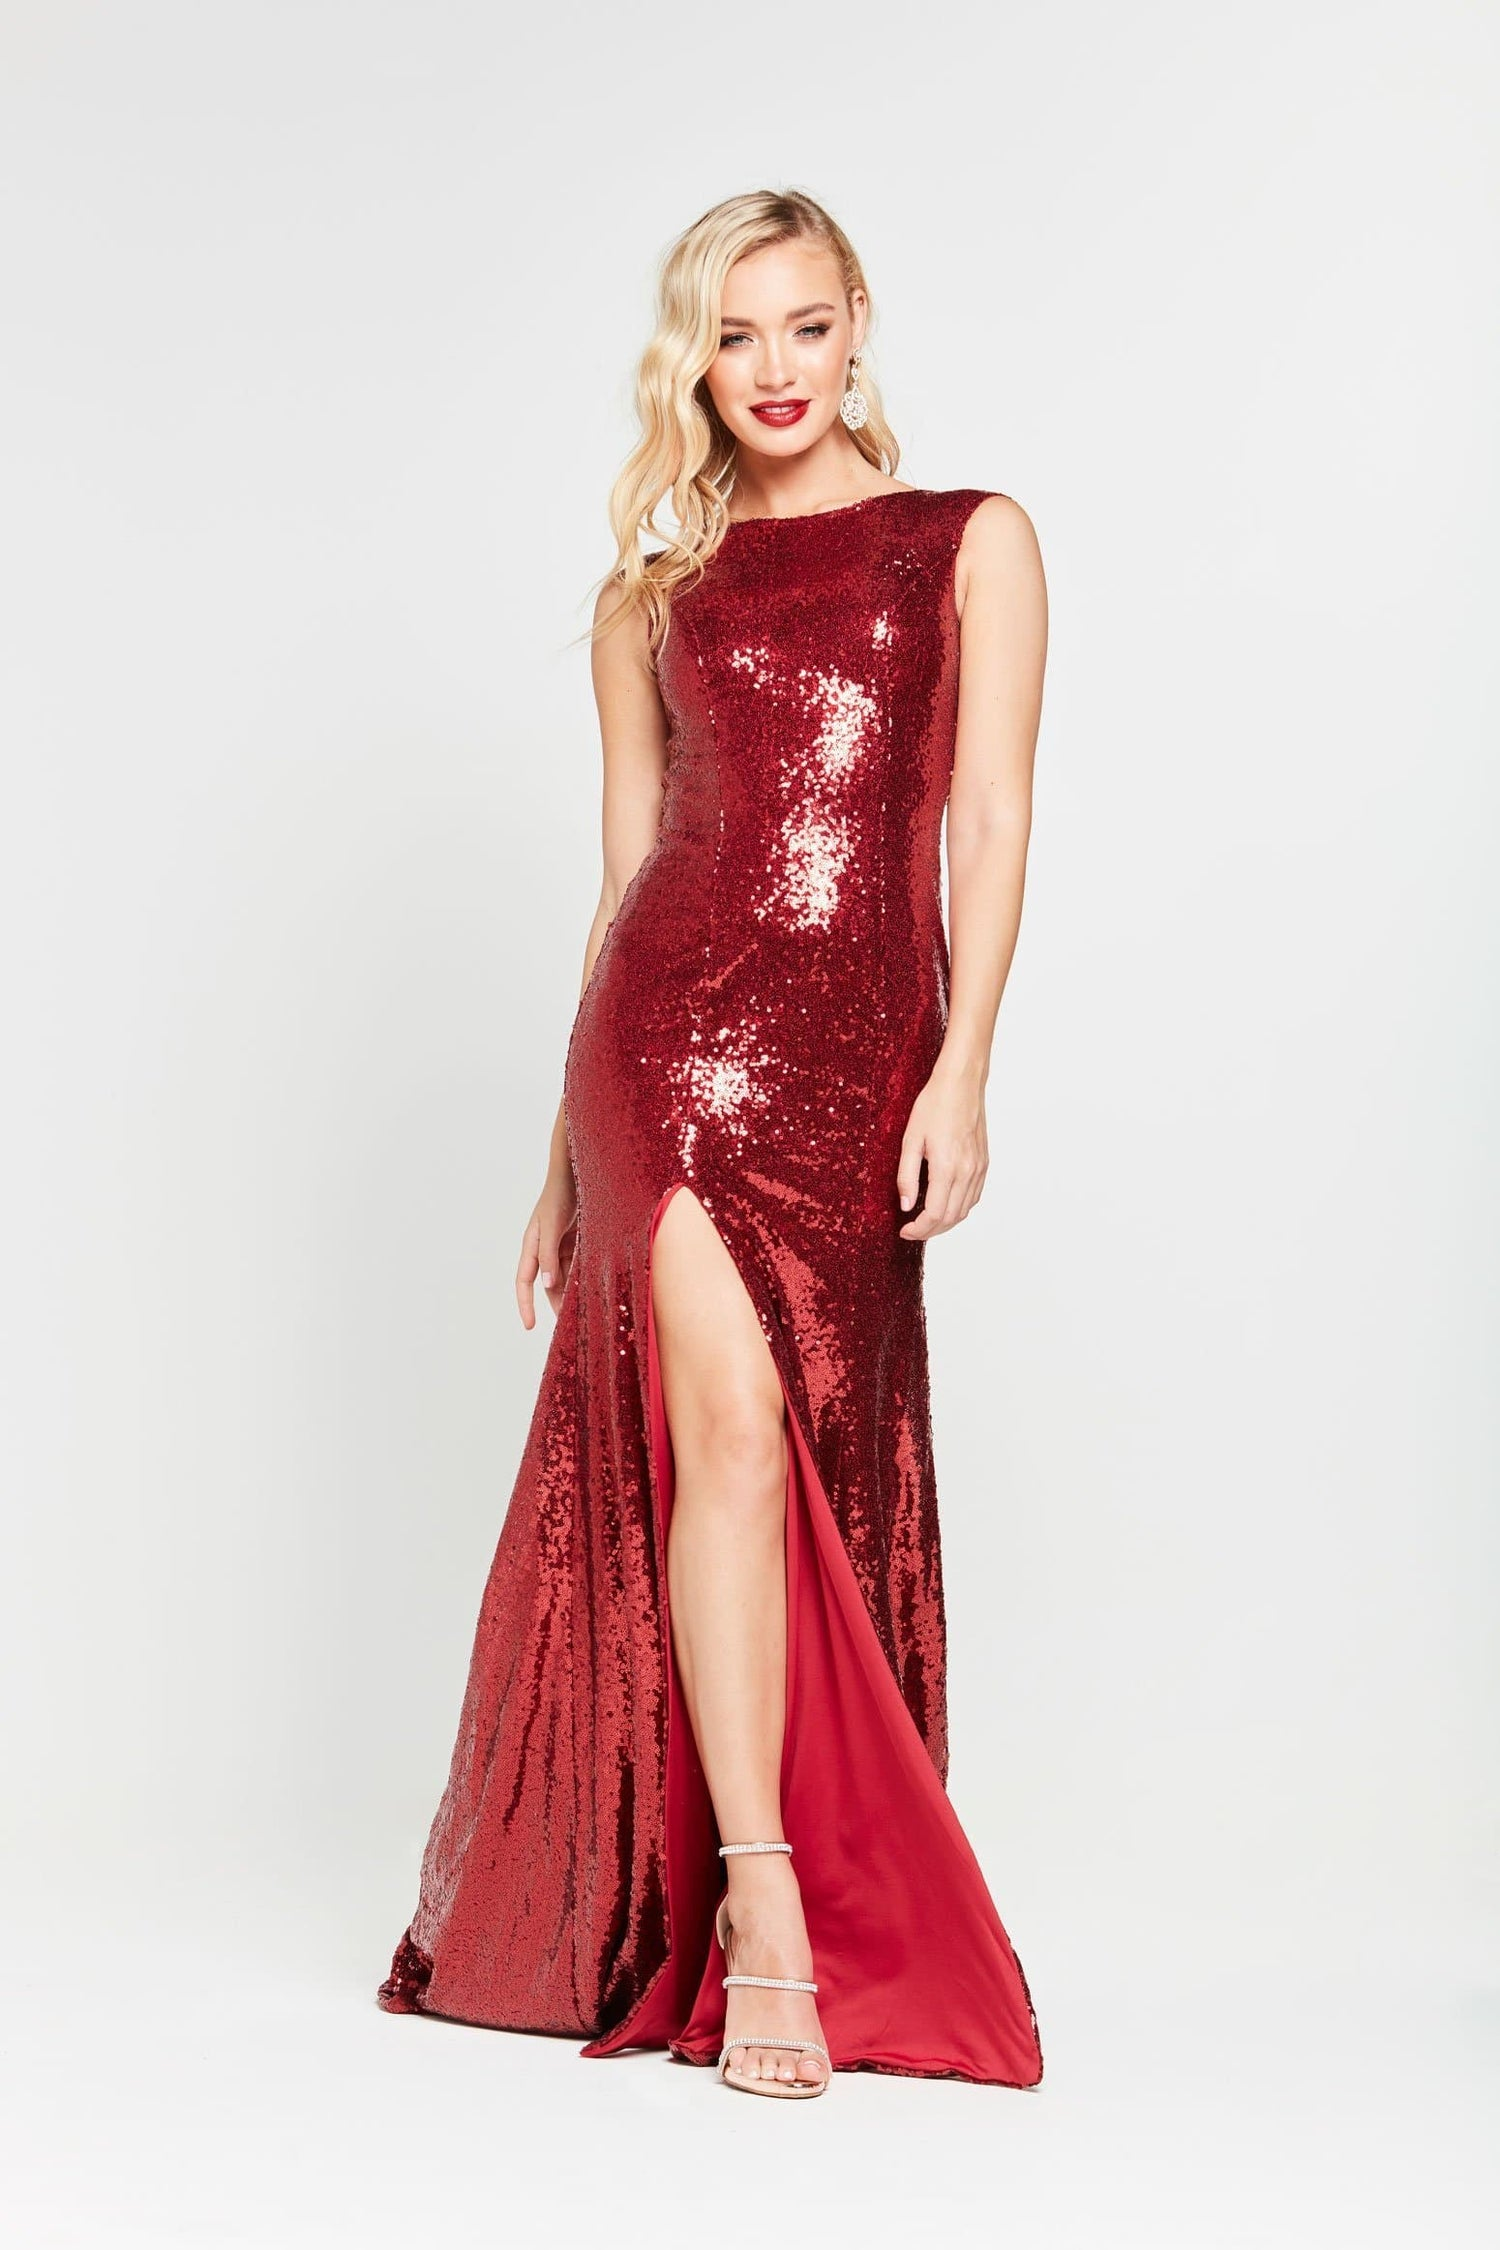 A&N Lila -  Deep Red Sequin Gown with High Neck and Side Slit